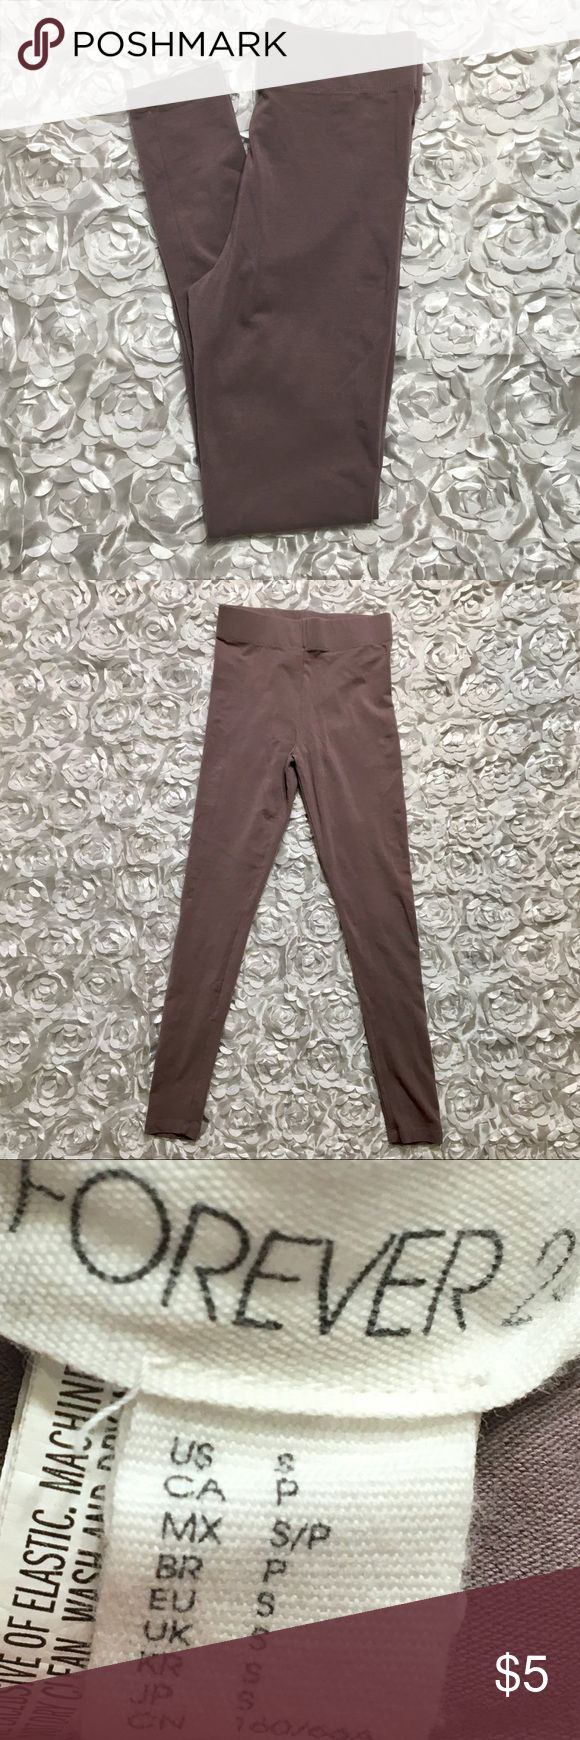 Forever 21 Nude Leggings NWOT!! Forever 21 Nude Leggings. Super soft and comfortable. Dress up or down. Women's size S. Make an offer or bundle and save! Forever 21 Pants Leggings